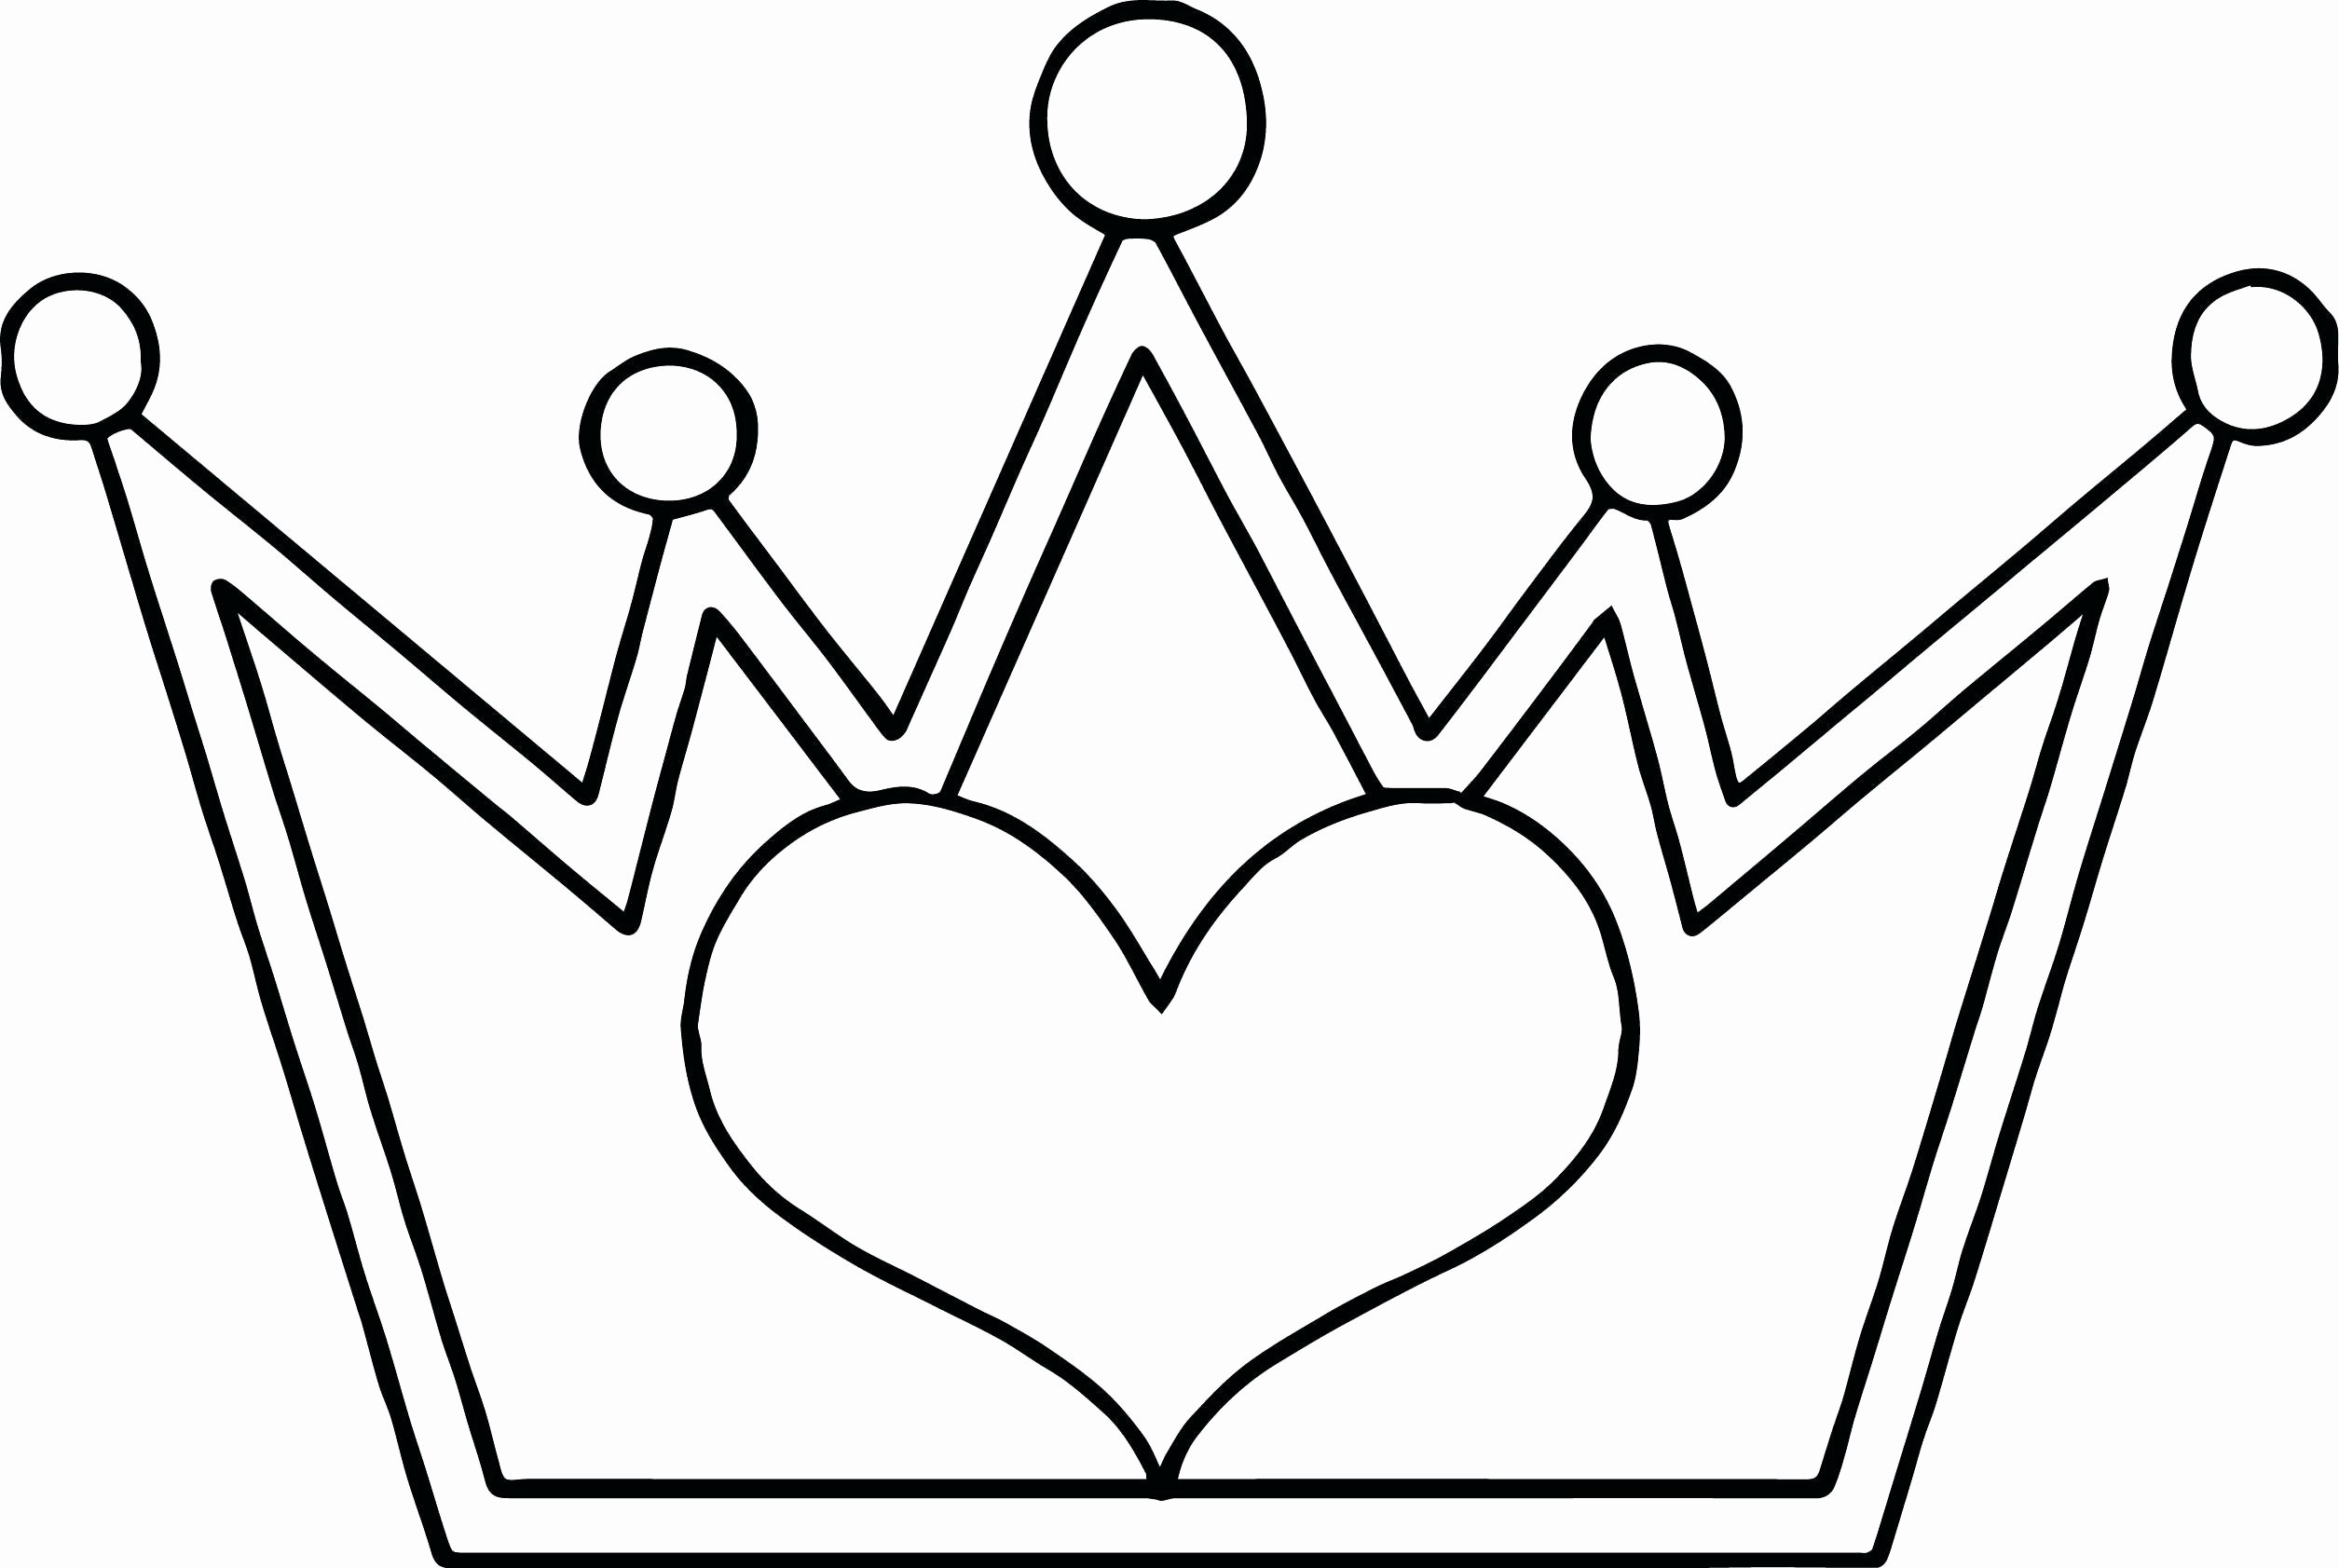 Free Princess Crown Template Printable New Crown Drawing Template at Getdrawings